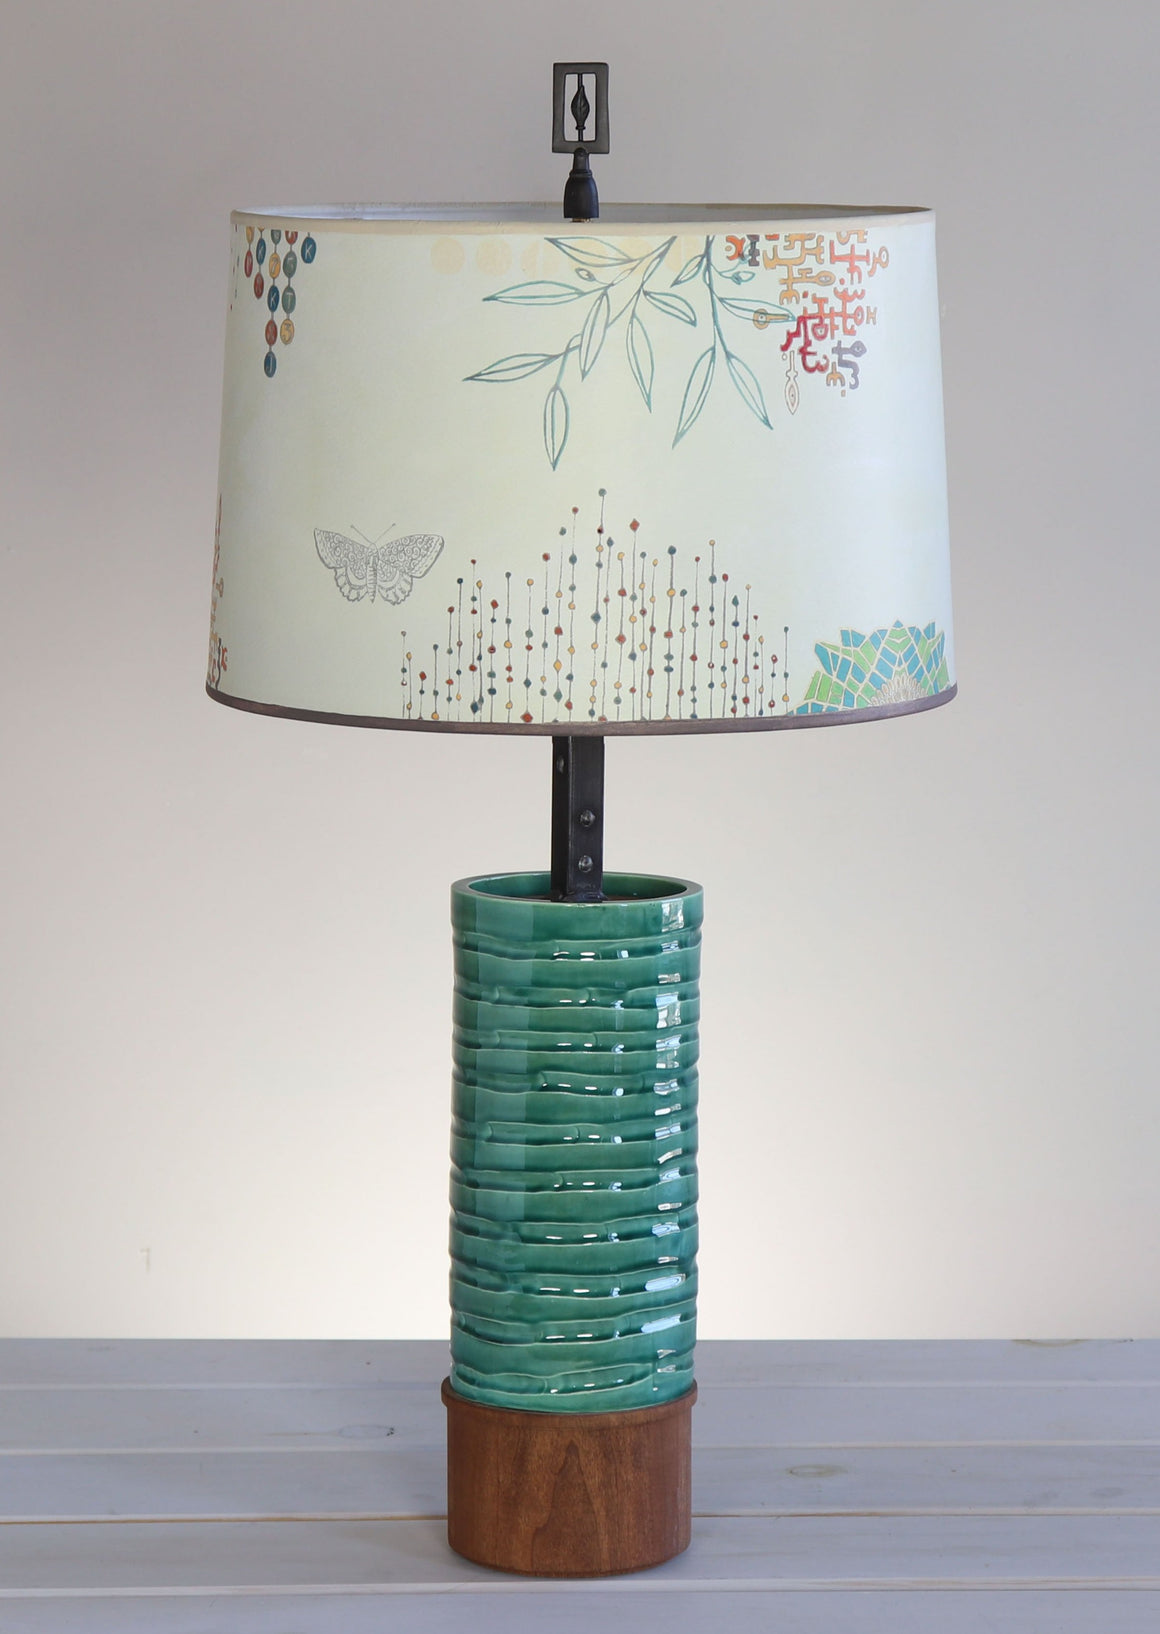 Ceramic and Wood Table Lamp with Large Drum Shade in Ecru Journey